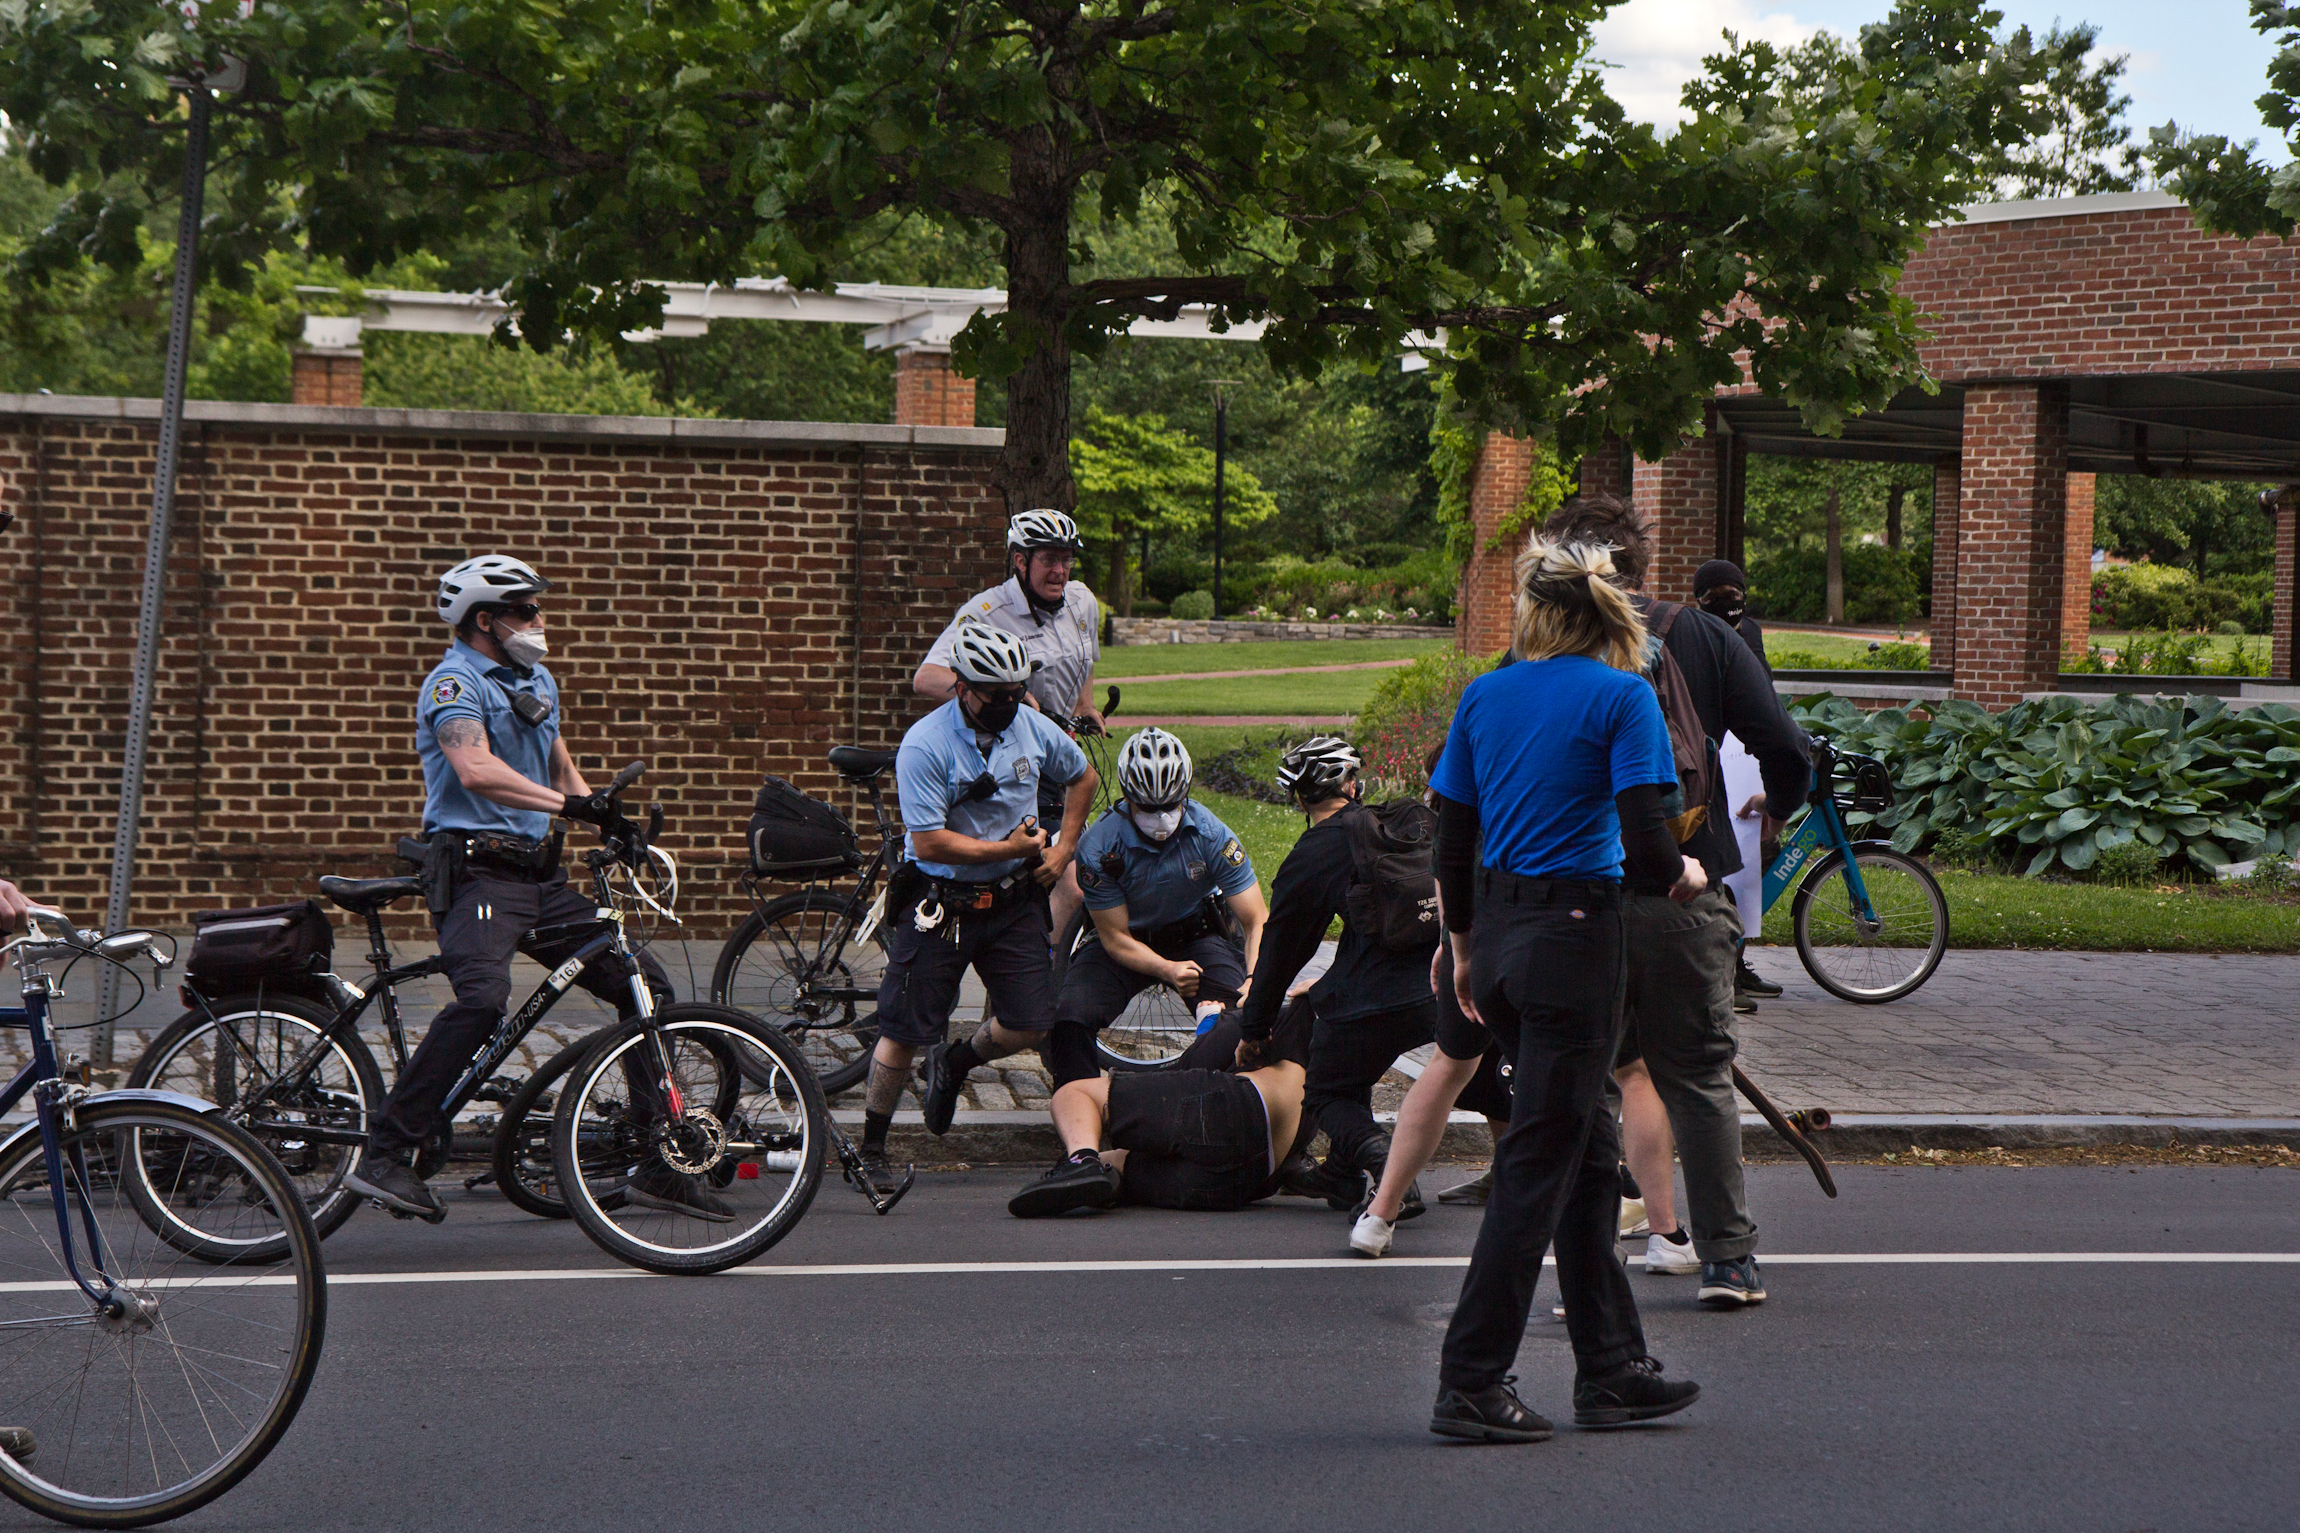 Police arrest a protester in front of Independence Mall